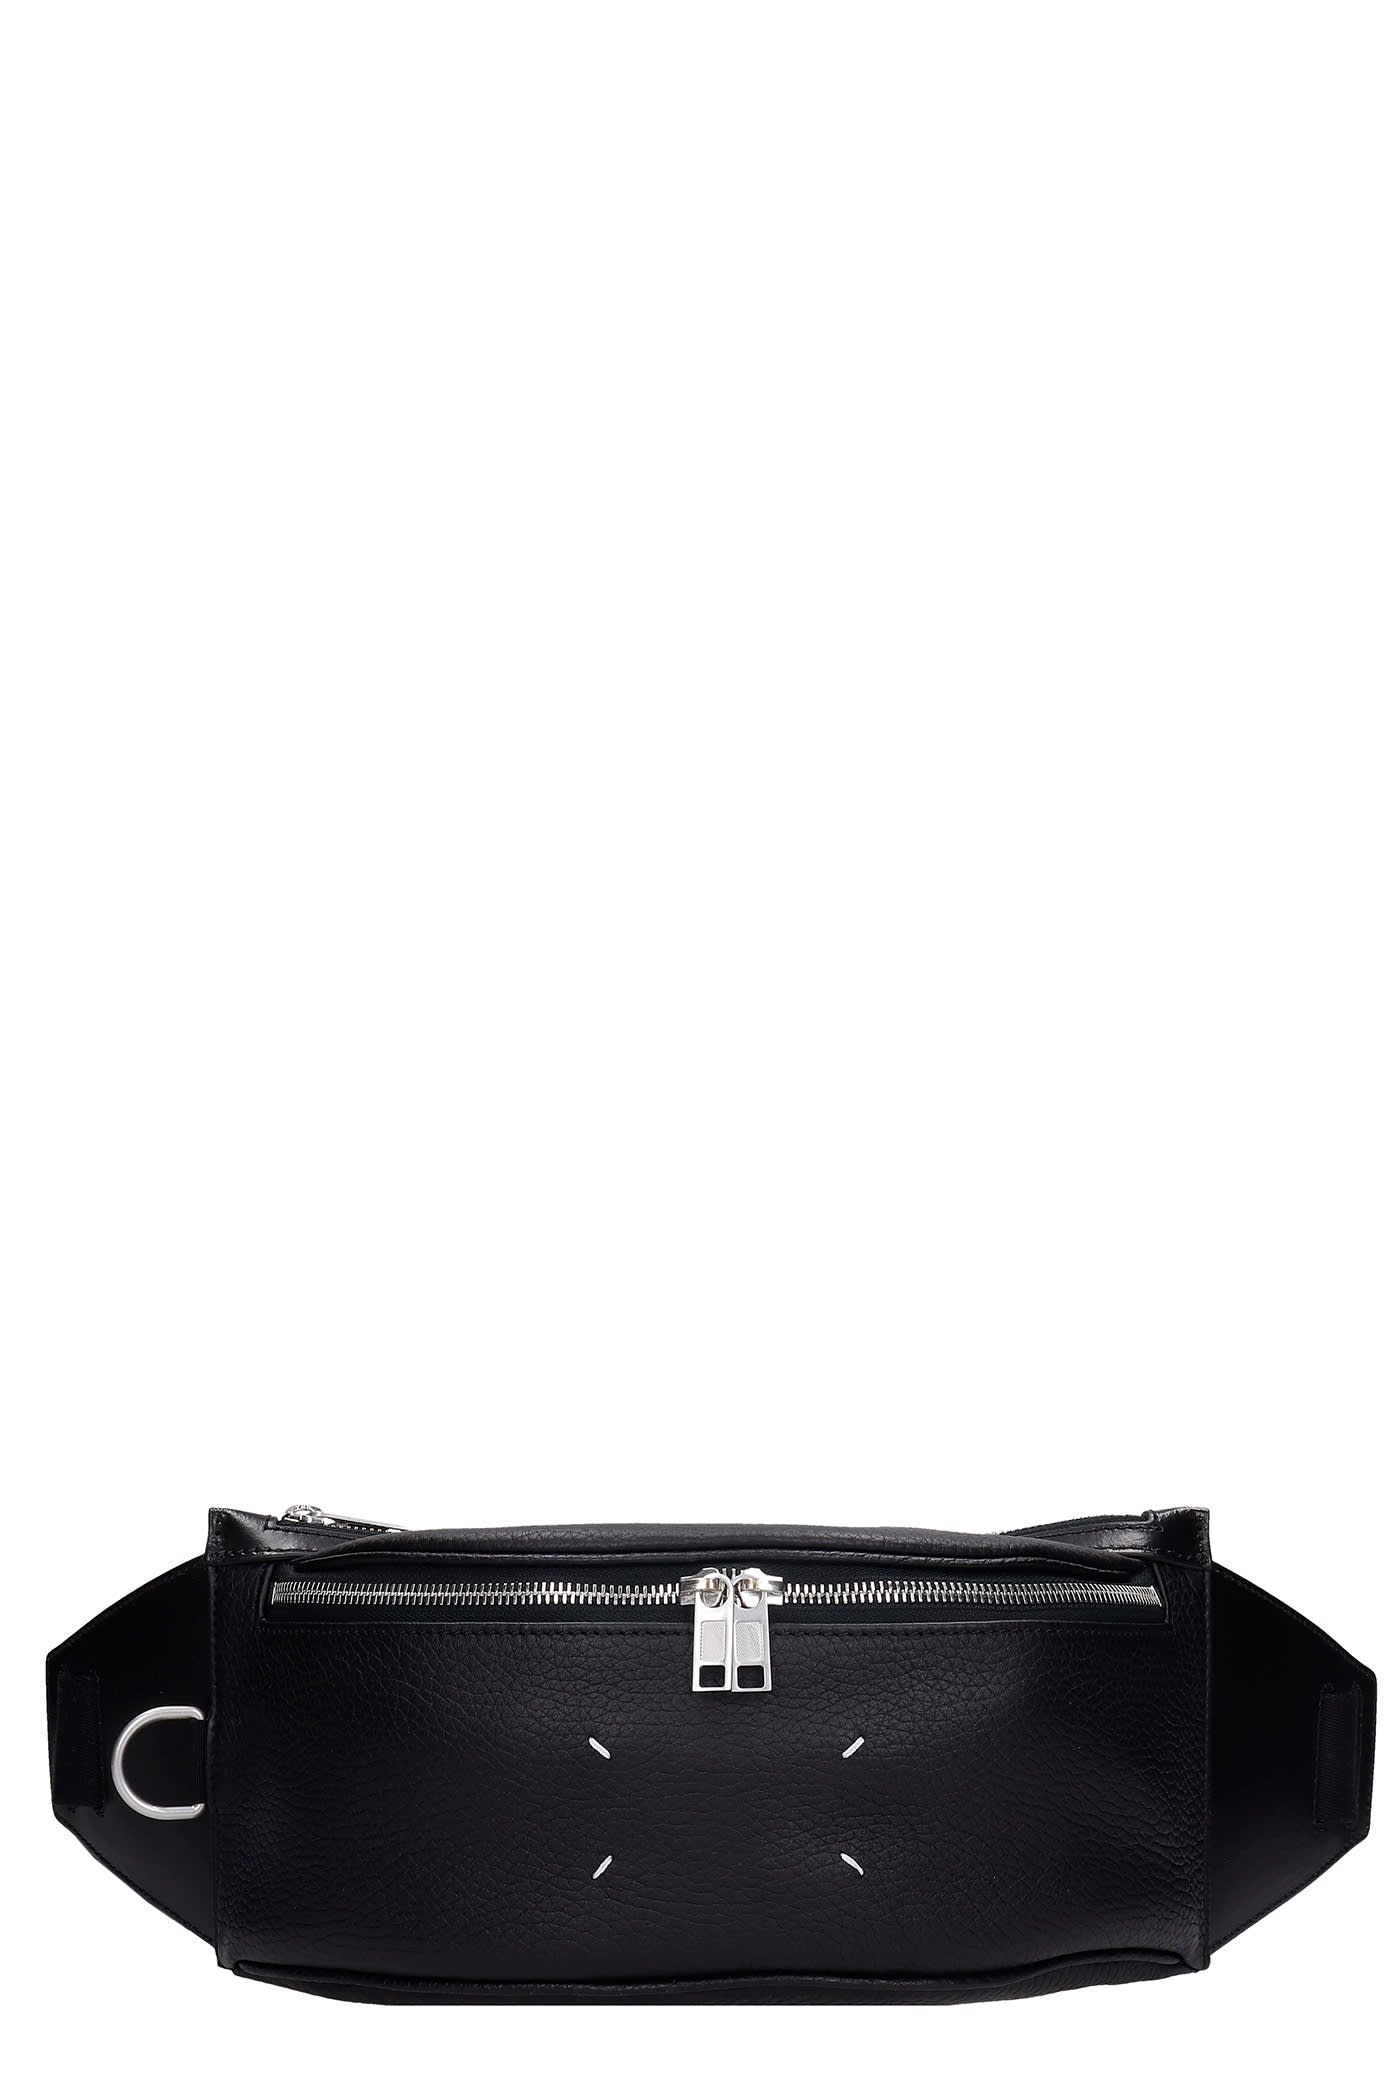 Maison Margiela Waist Bag In Black Leather